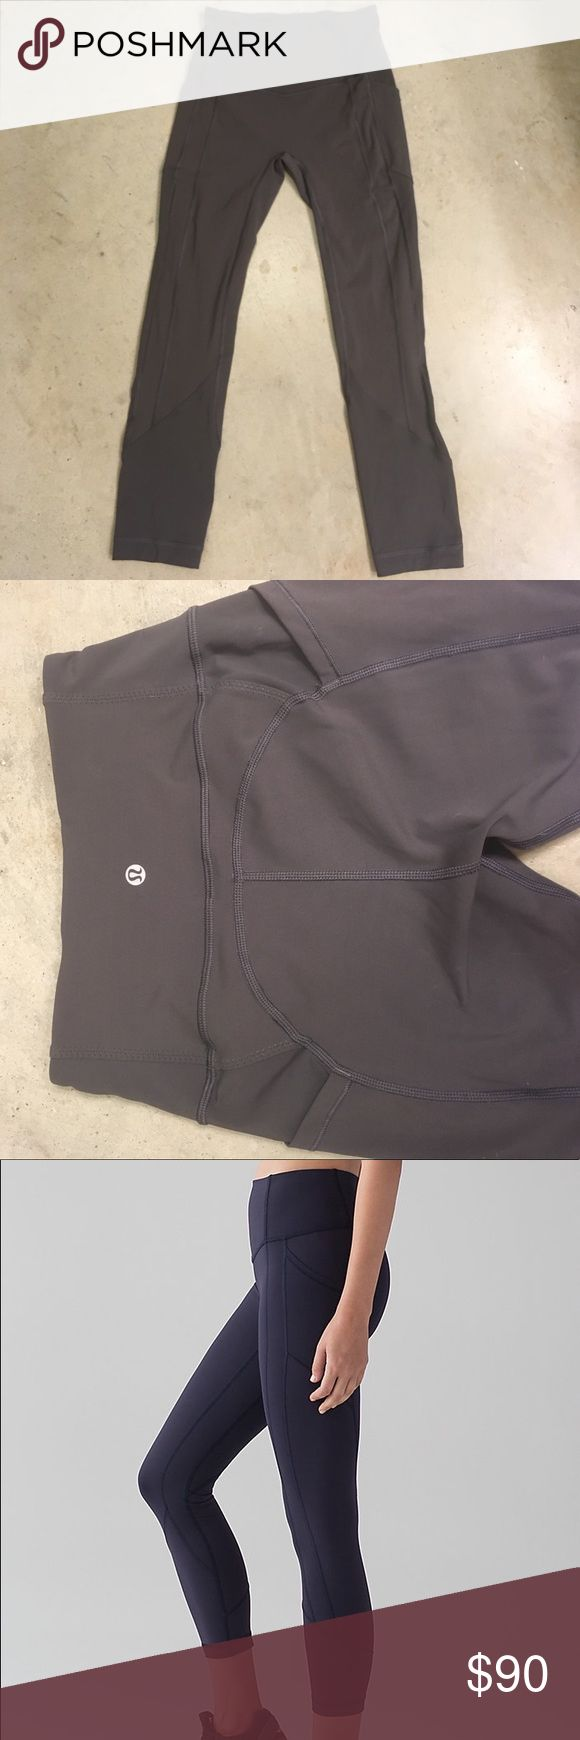 Lululemon All the Right Places Crop High waisted, zoned compression crop (7/8 length on me). In dark chrome color. No rips, stains or quality issues. Worn twice. lululemon athletica Pants Capris